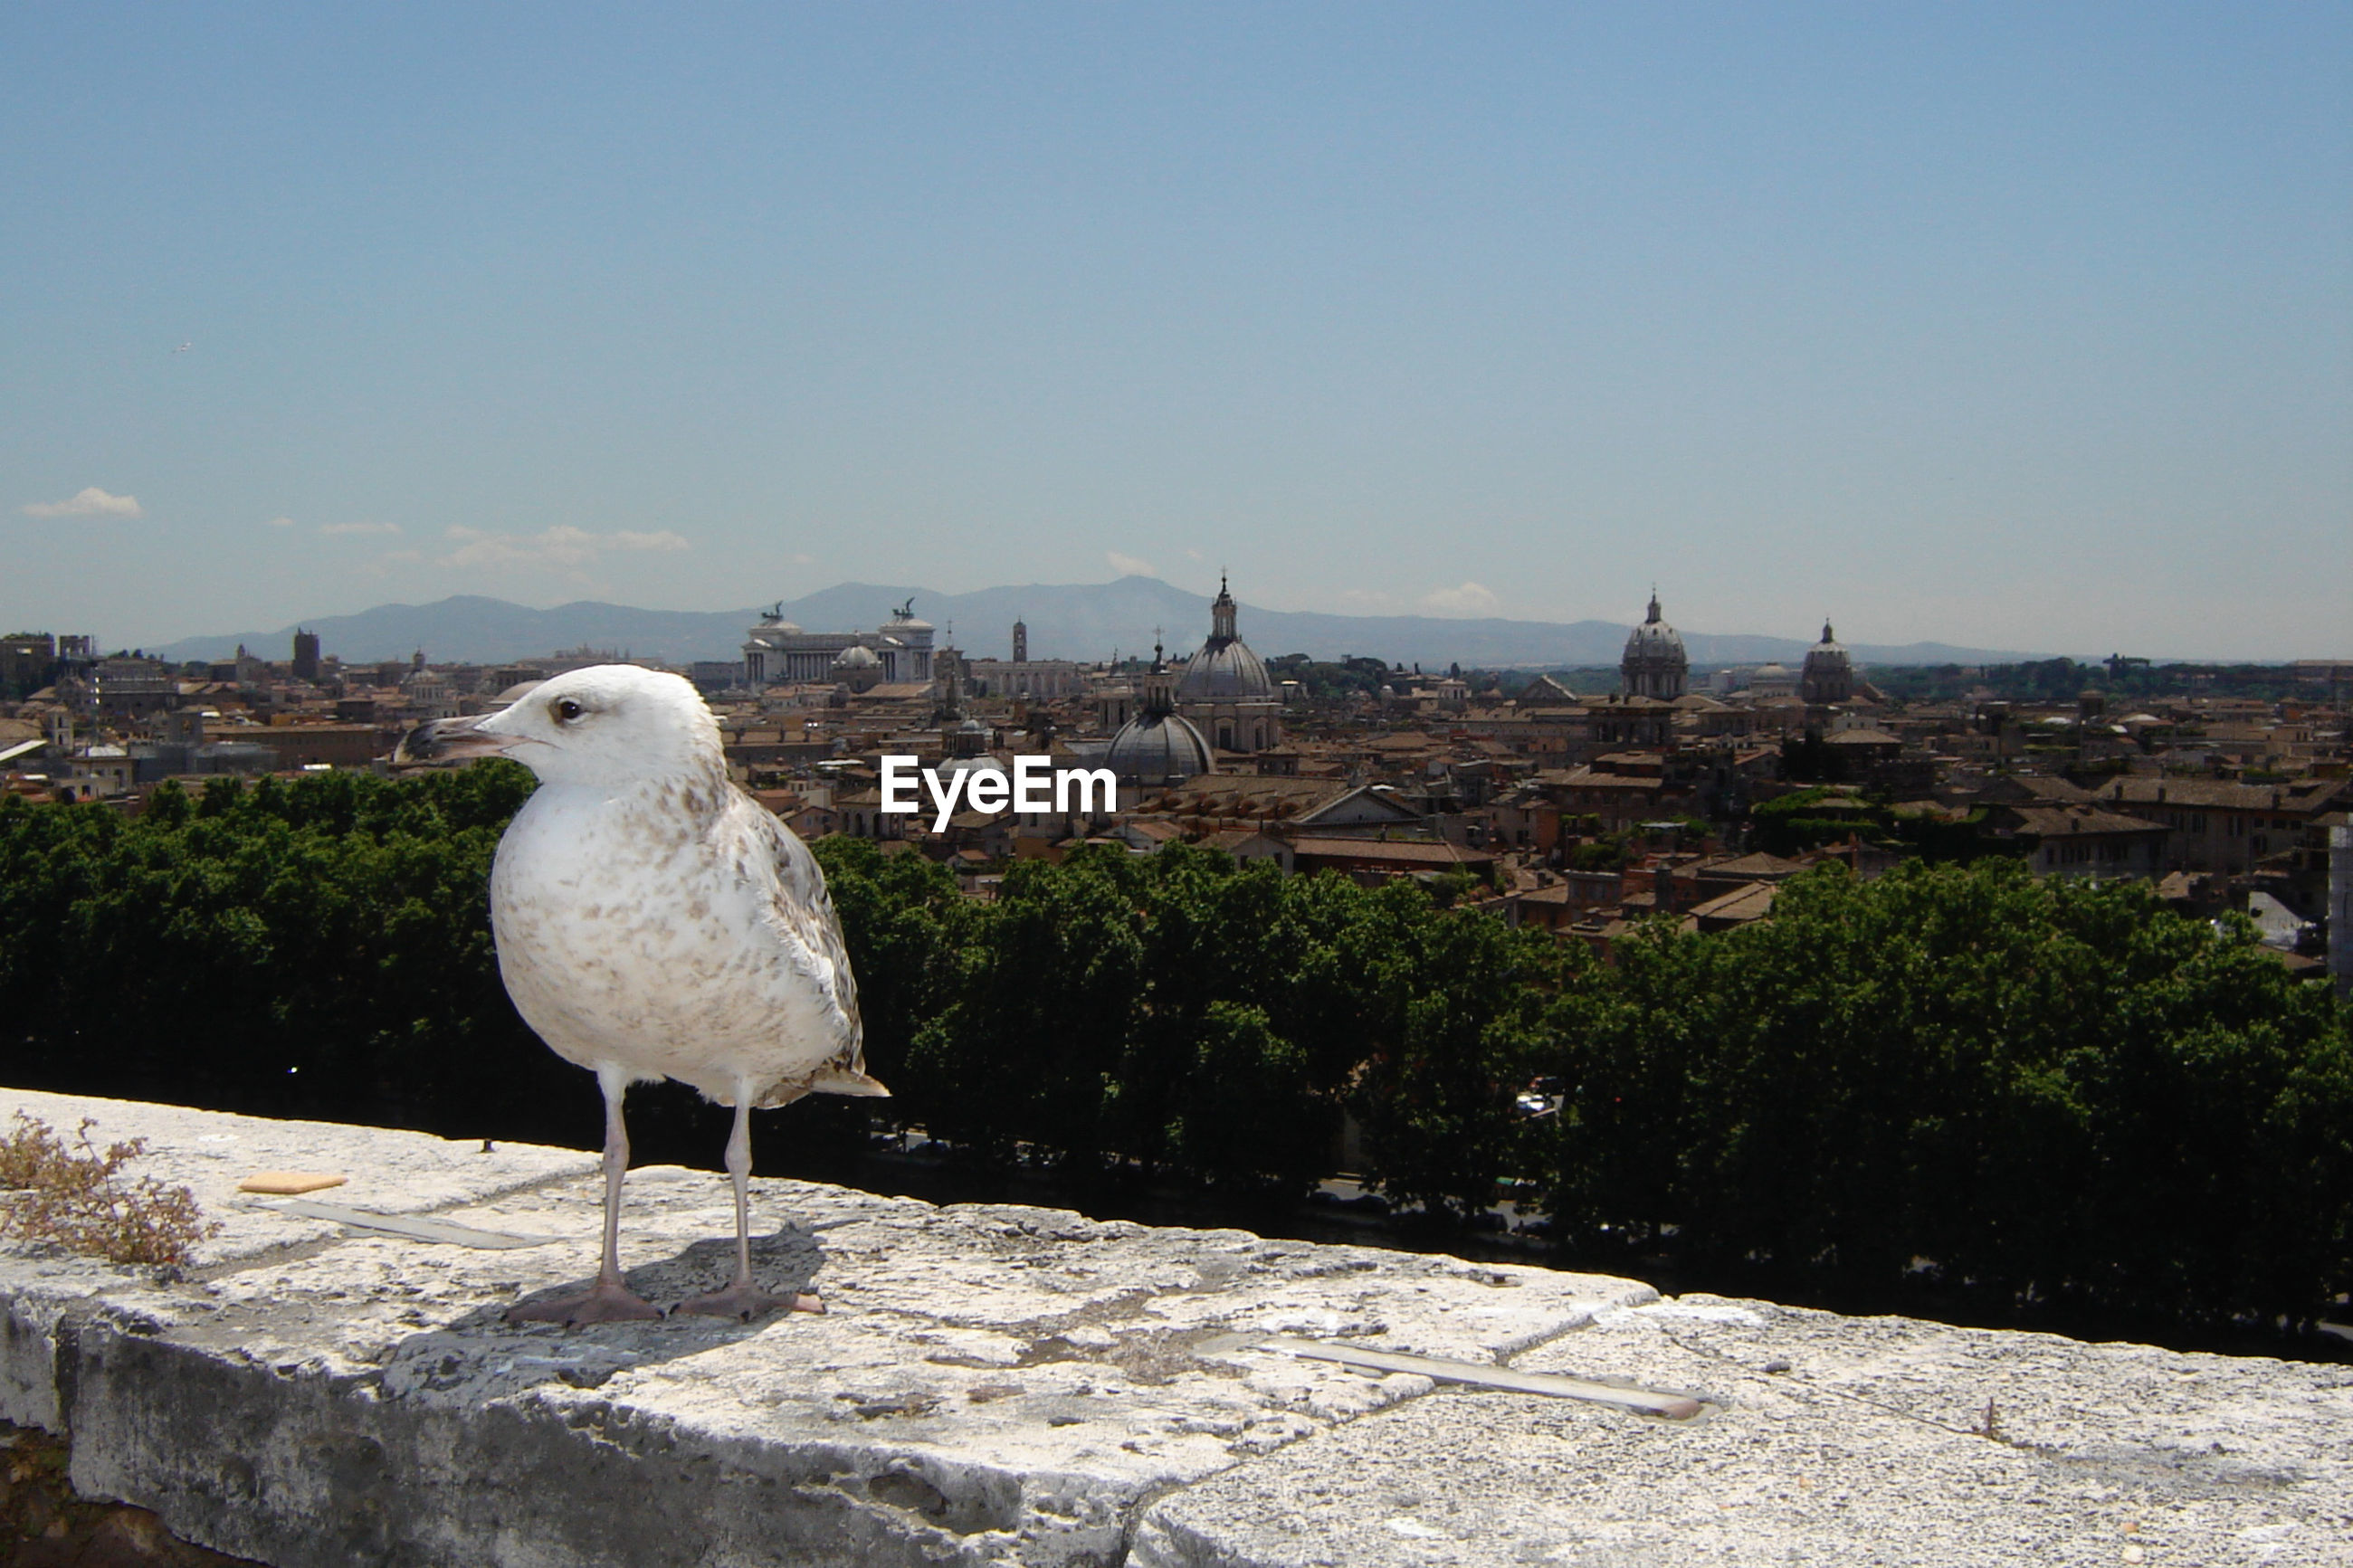 Close-up of seagull in front of cityscape